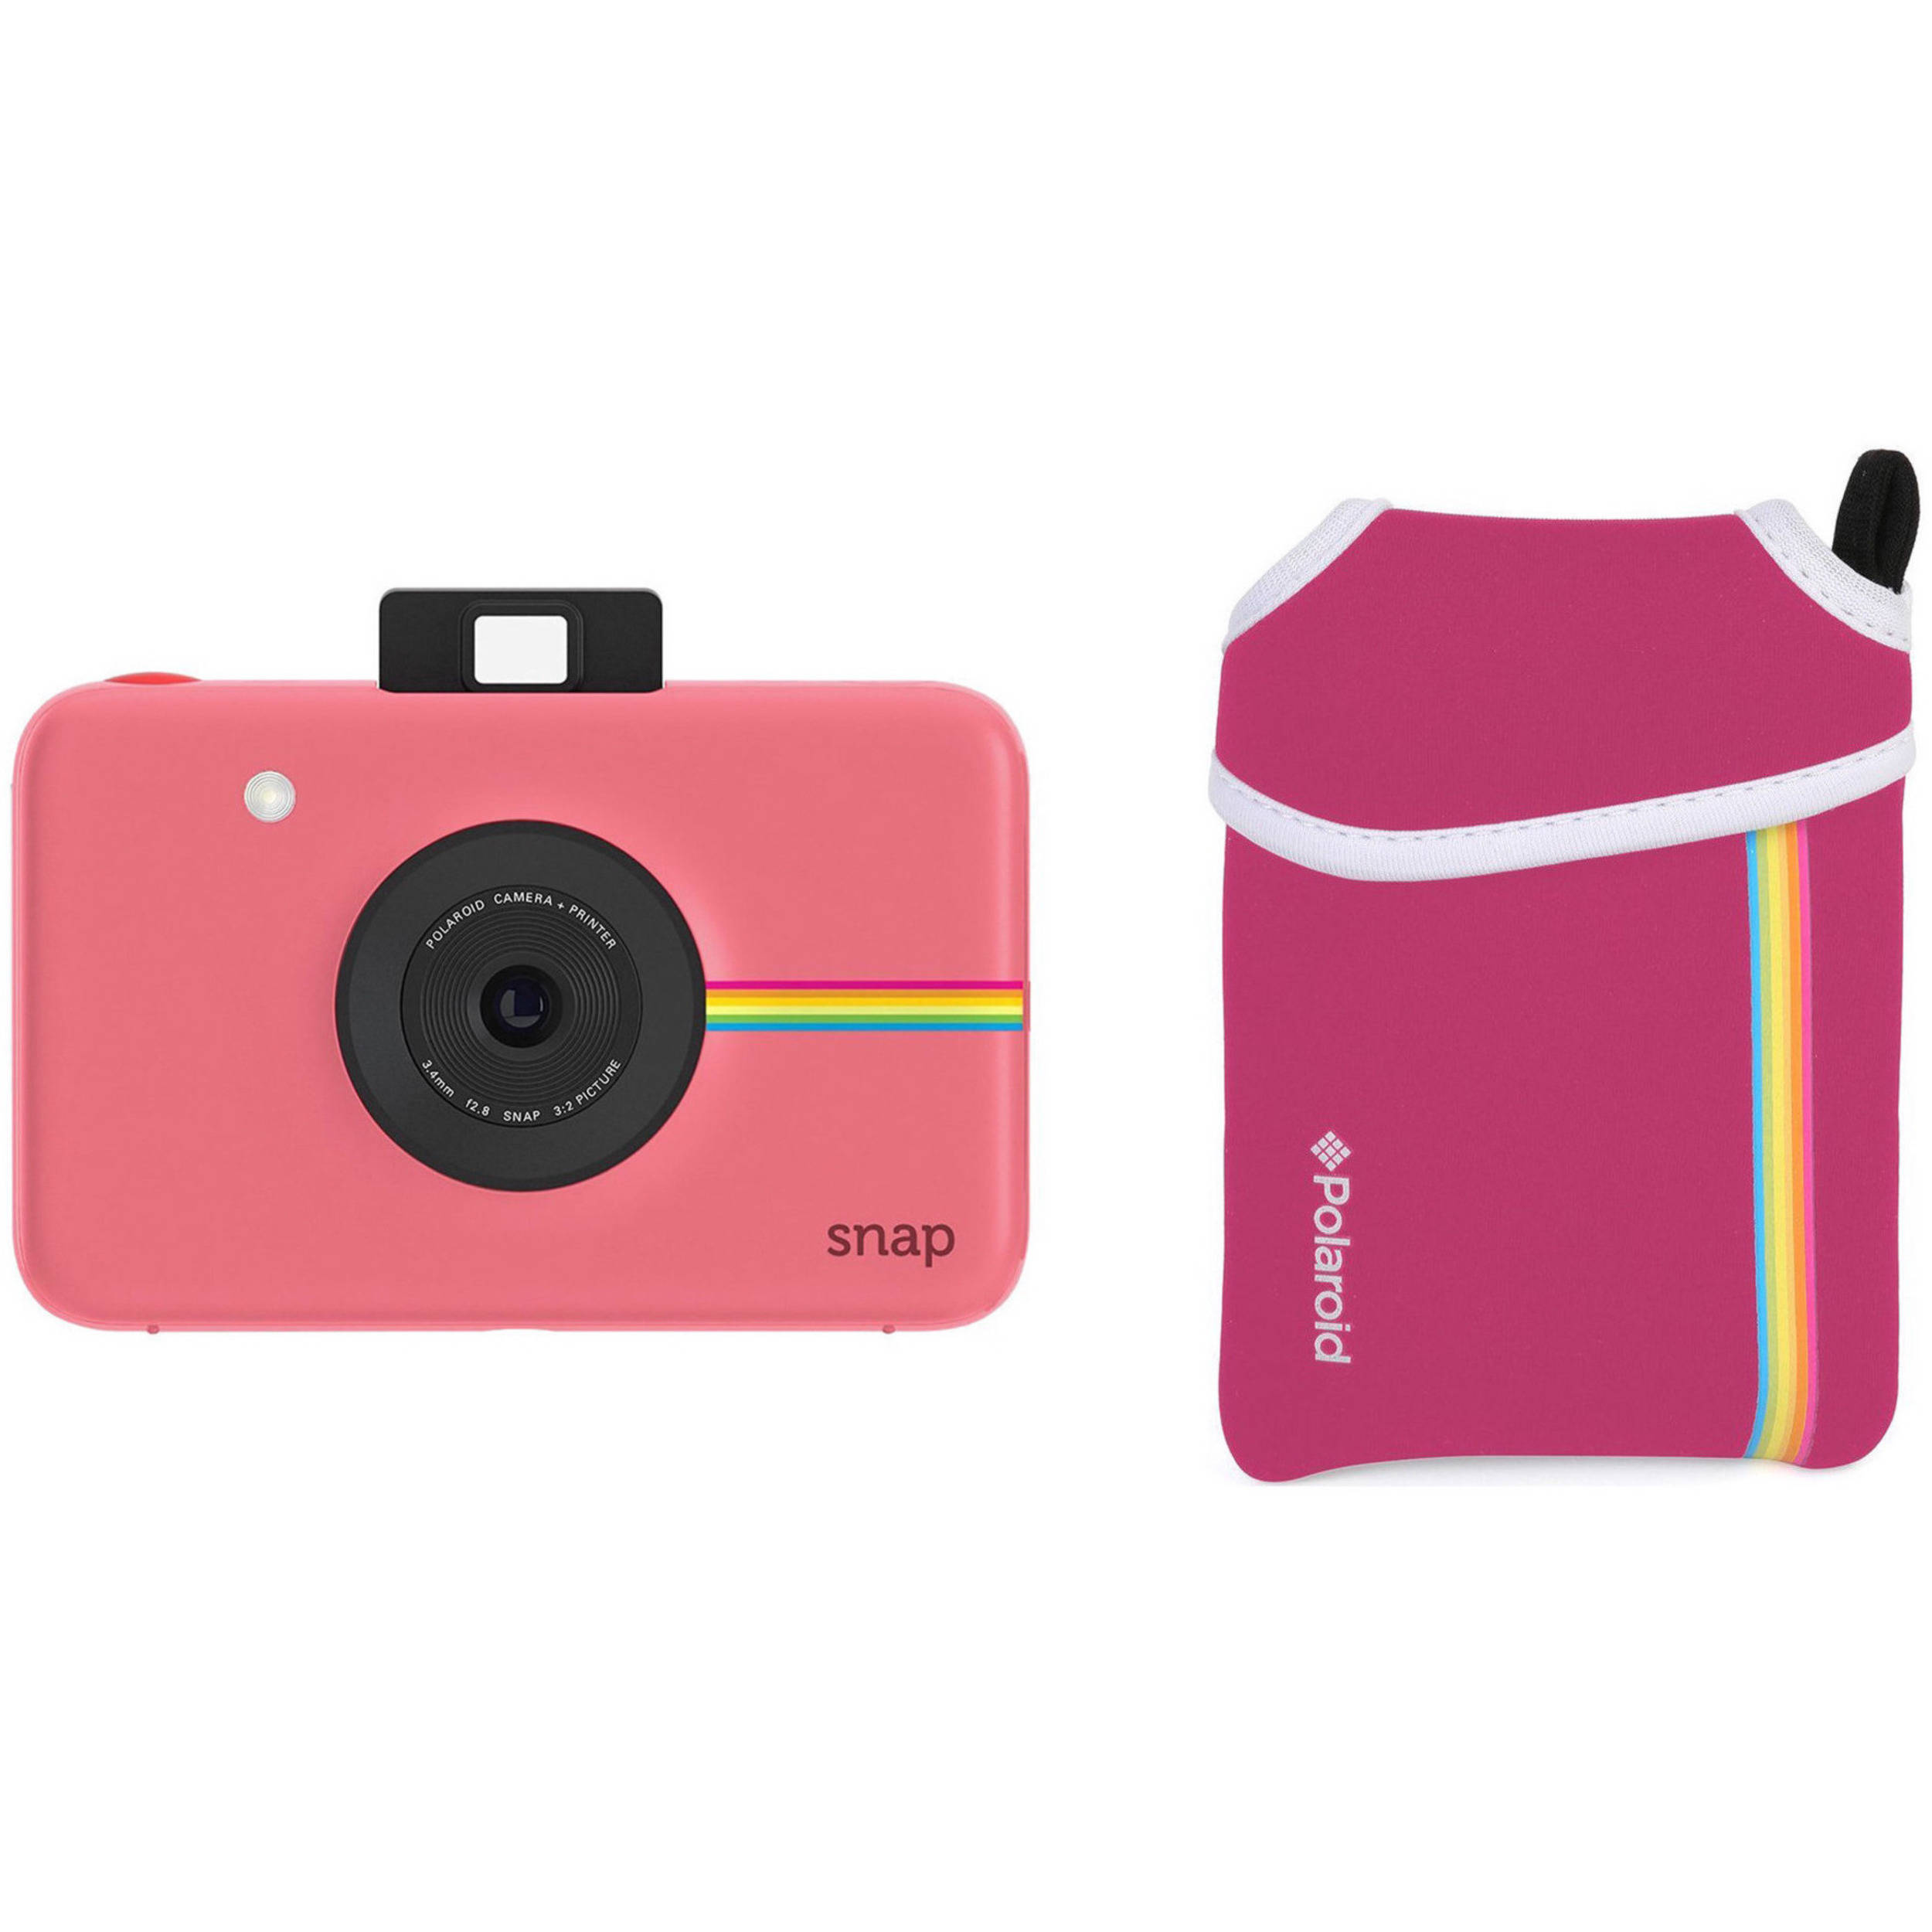 cb8e90a5dabf Polaroid Snap Instant Digital Camera with Pouch Kit (Pink) B&H